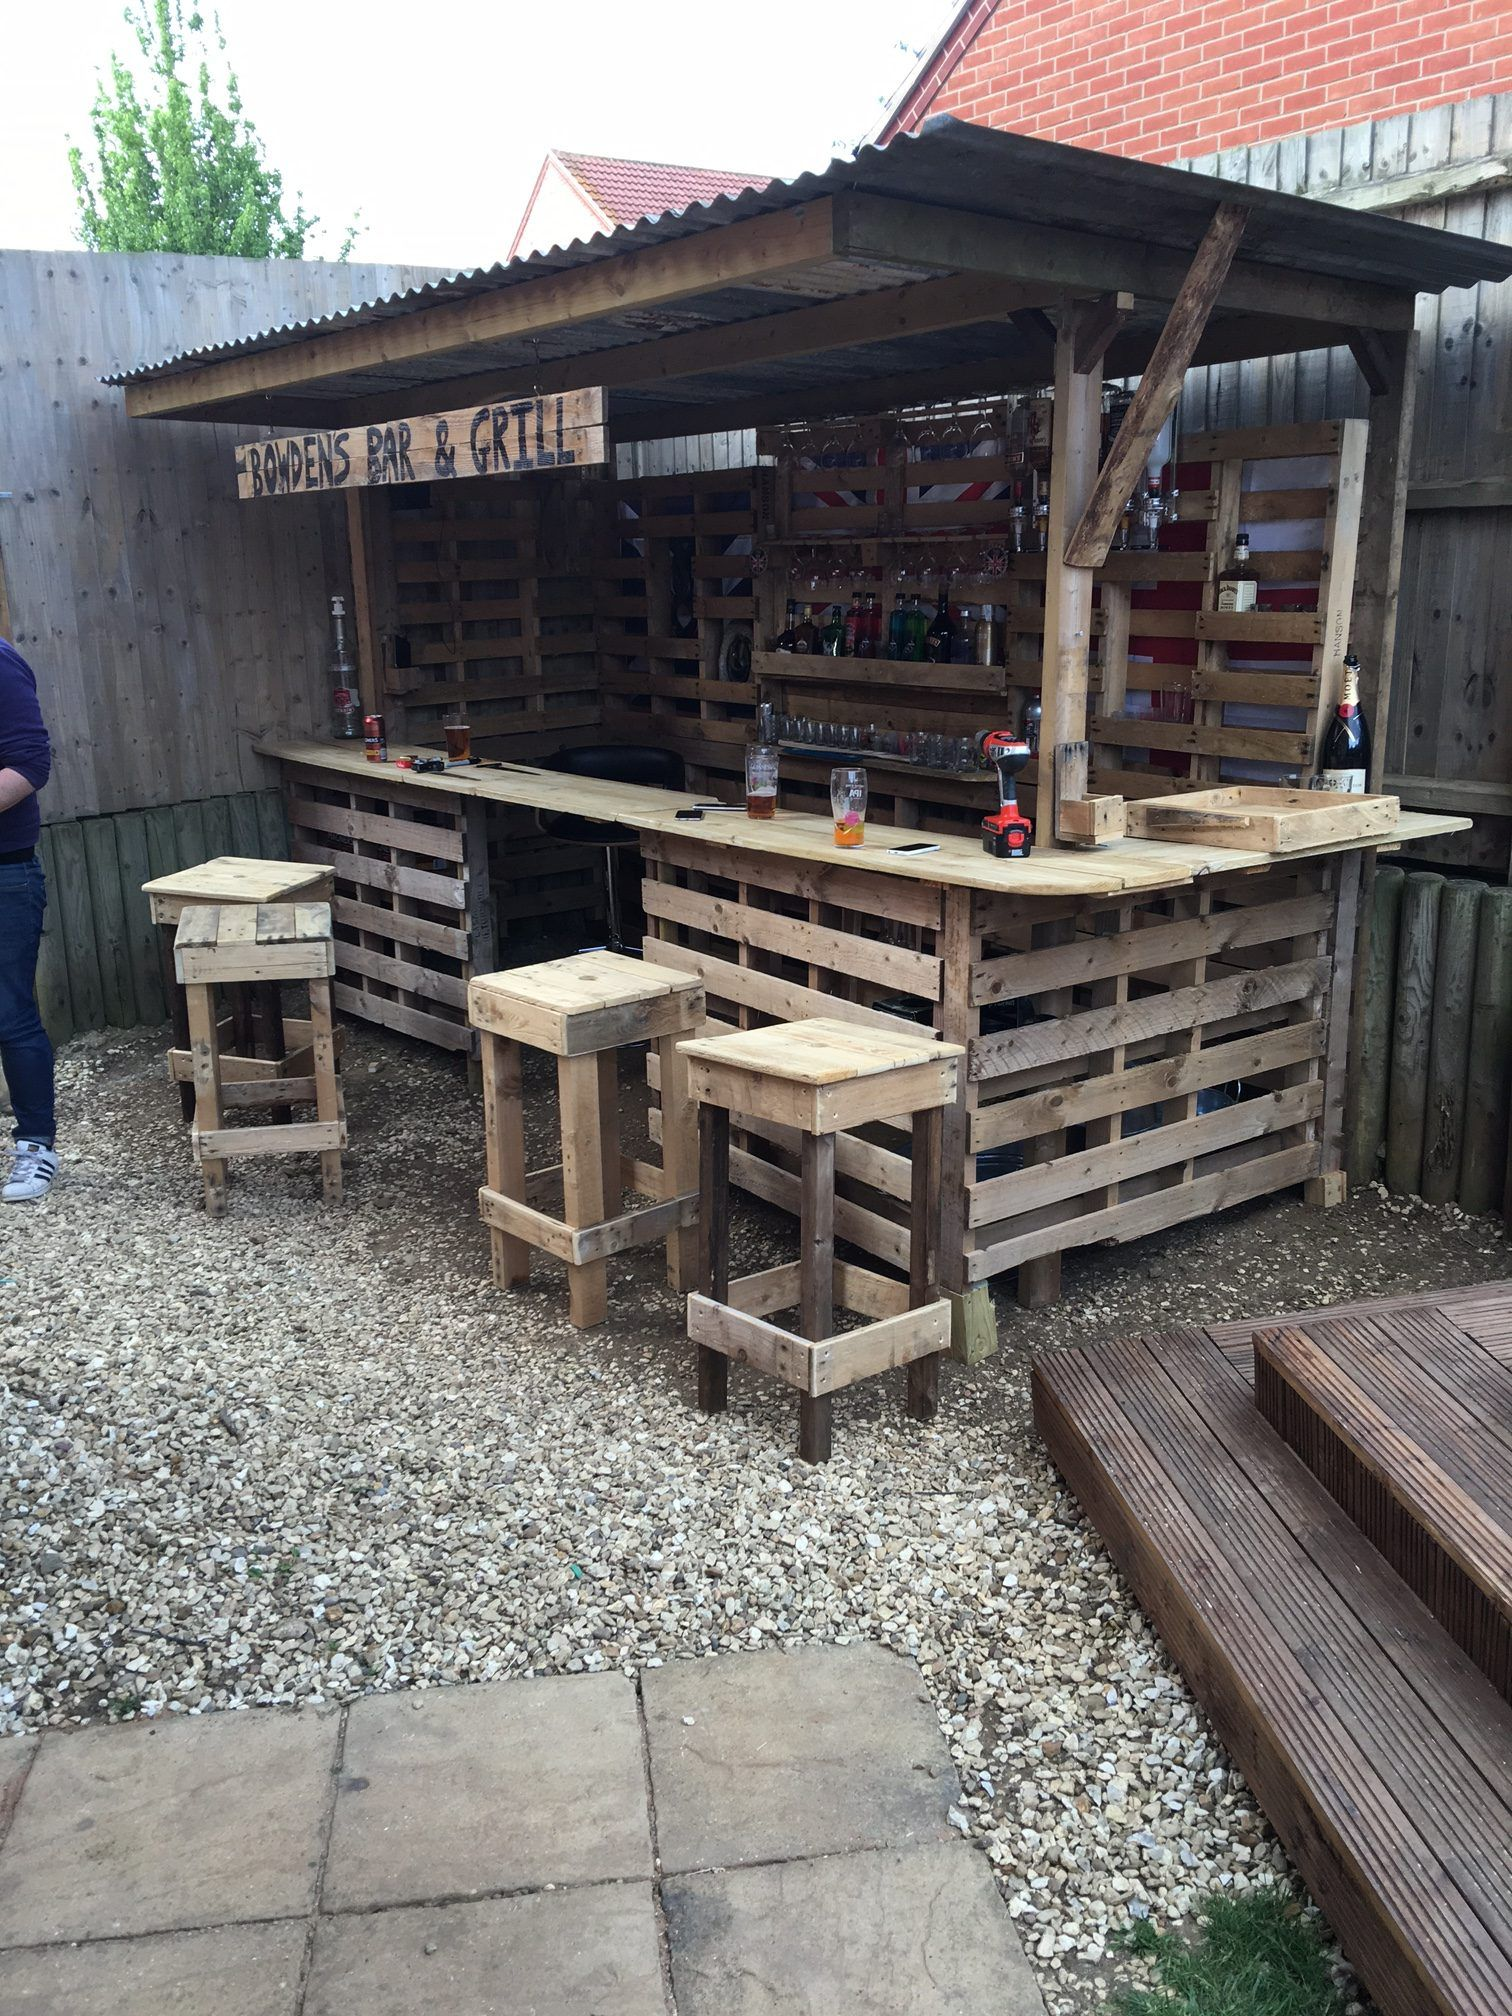 Garden bar how to turn a pile of old pallets into a cool outdoor bar KWSFAOP